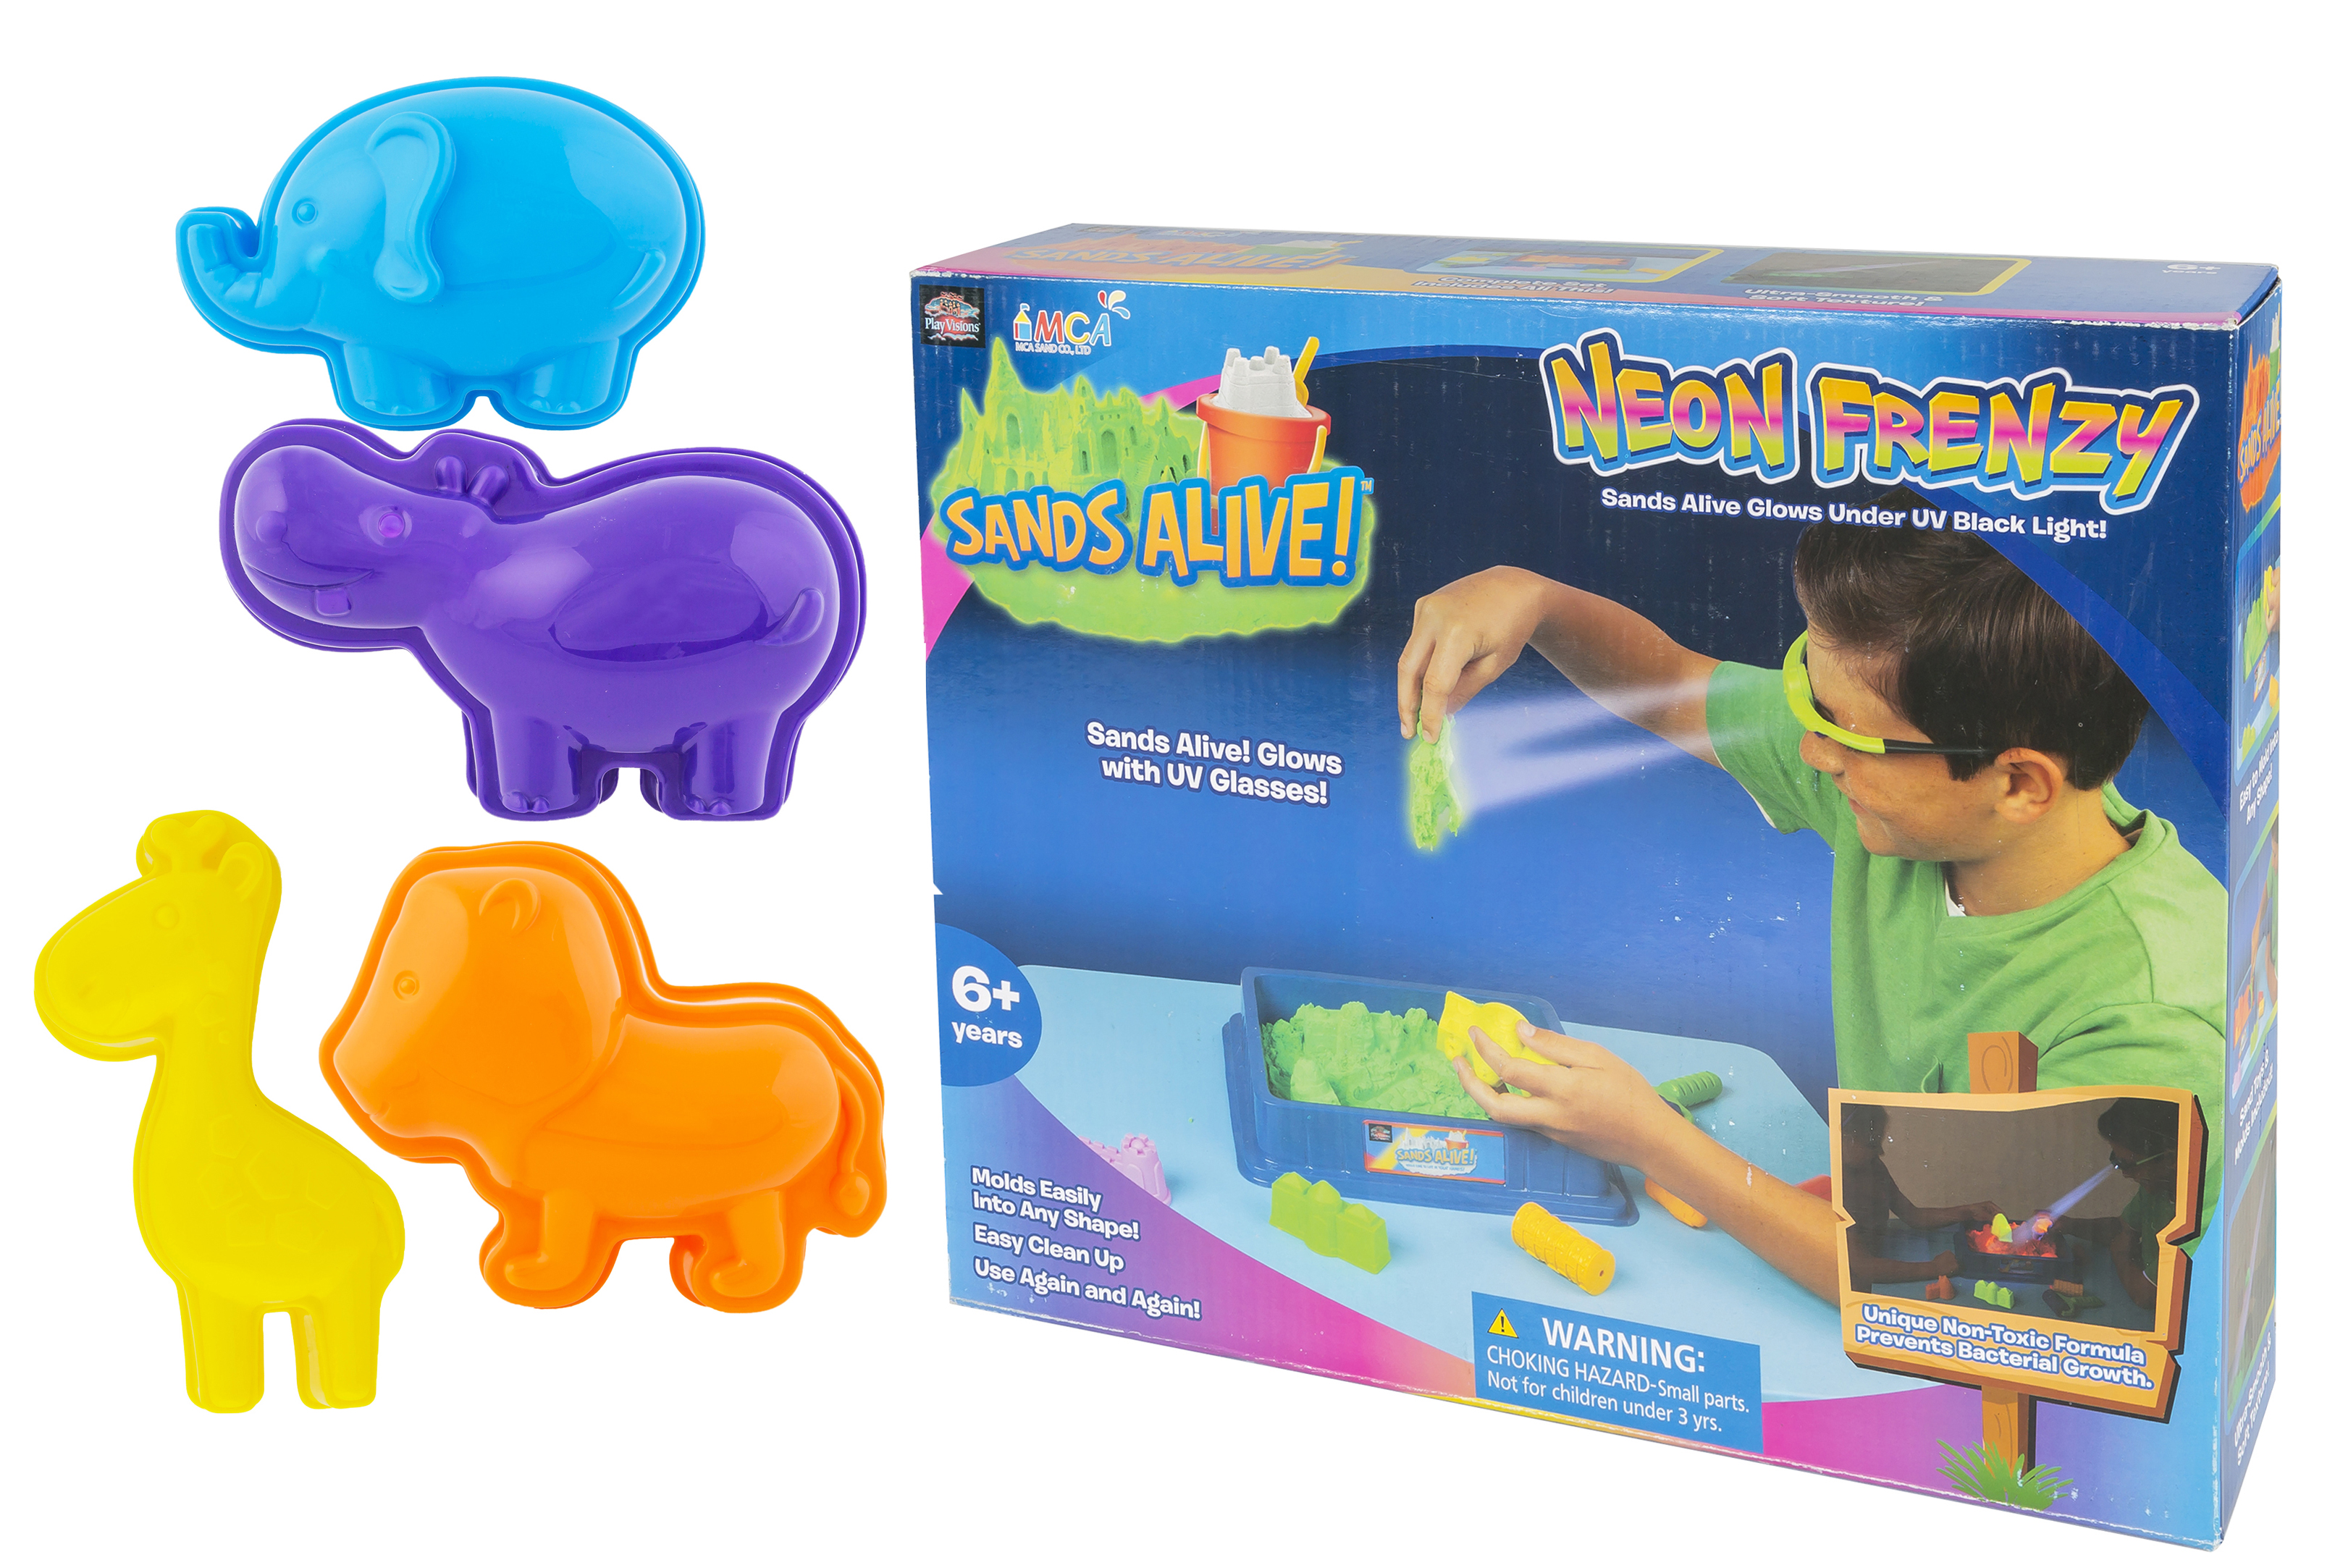 Sands Alive Play Visions Neon Frenzy with Kipp Brothers Animal Sand Molds